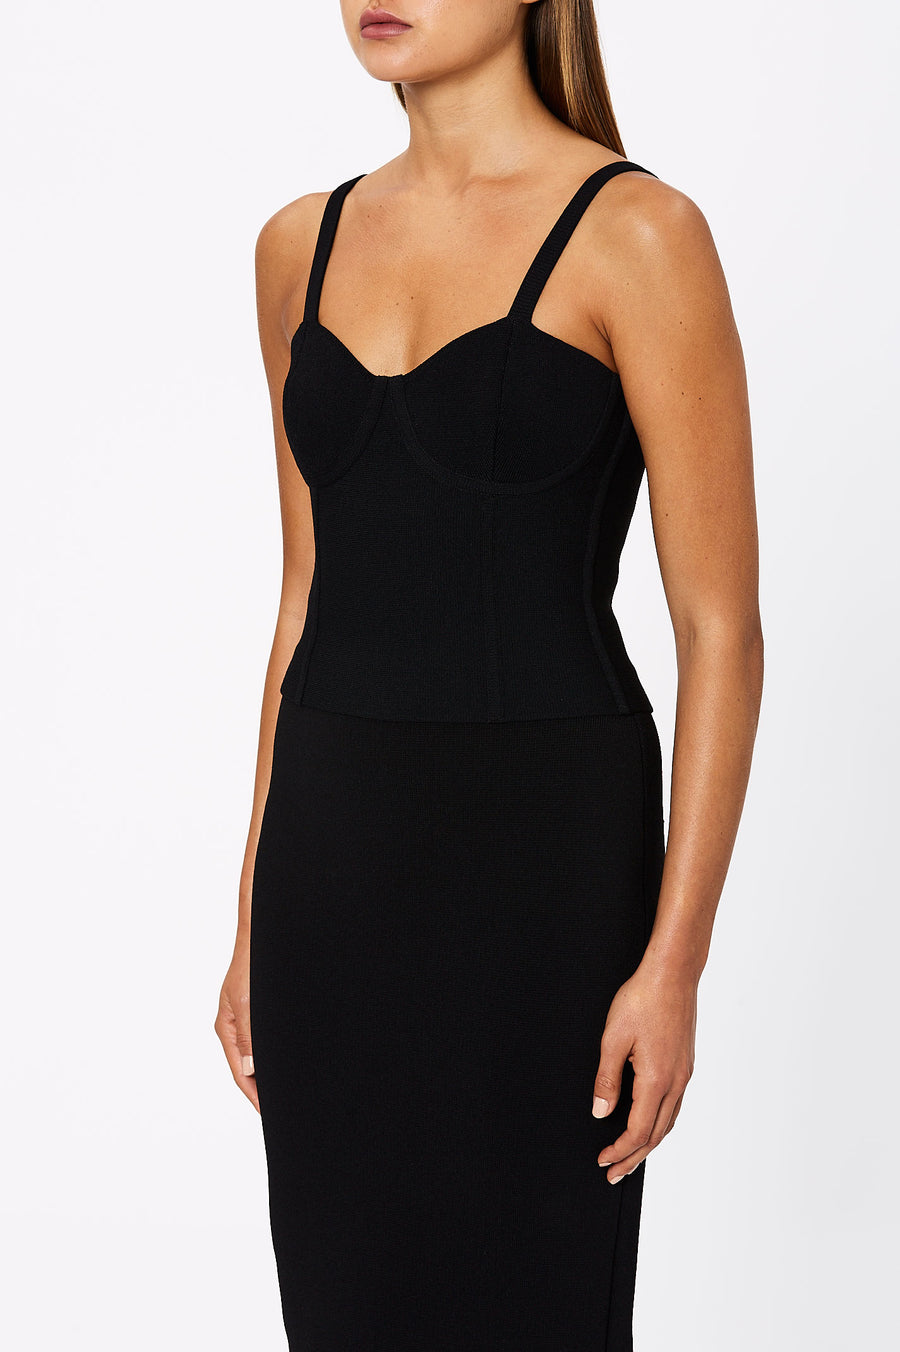 Crepe Knit Bustier Black - Scanlan Theodore